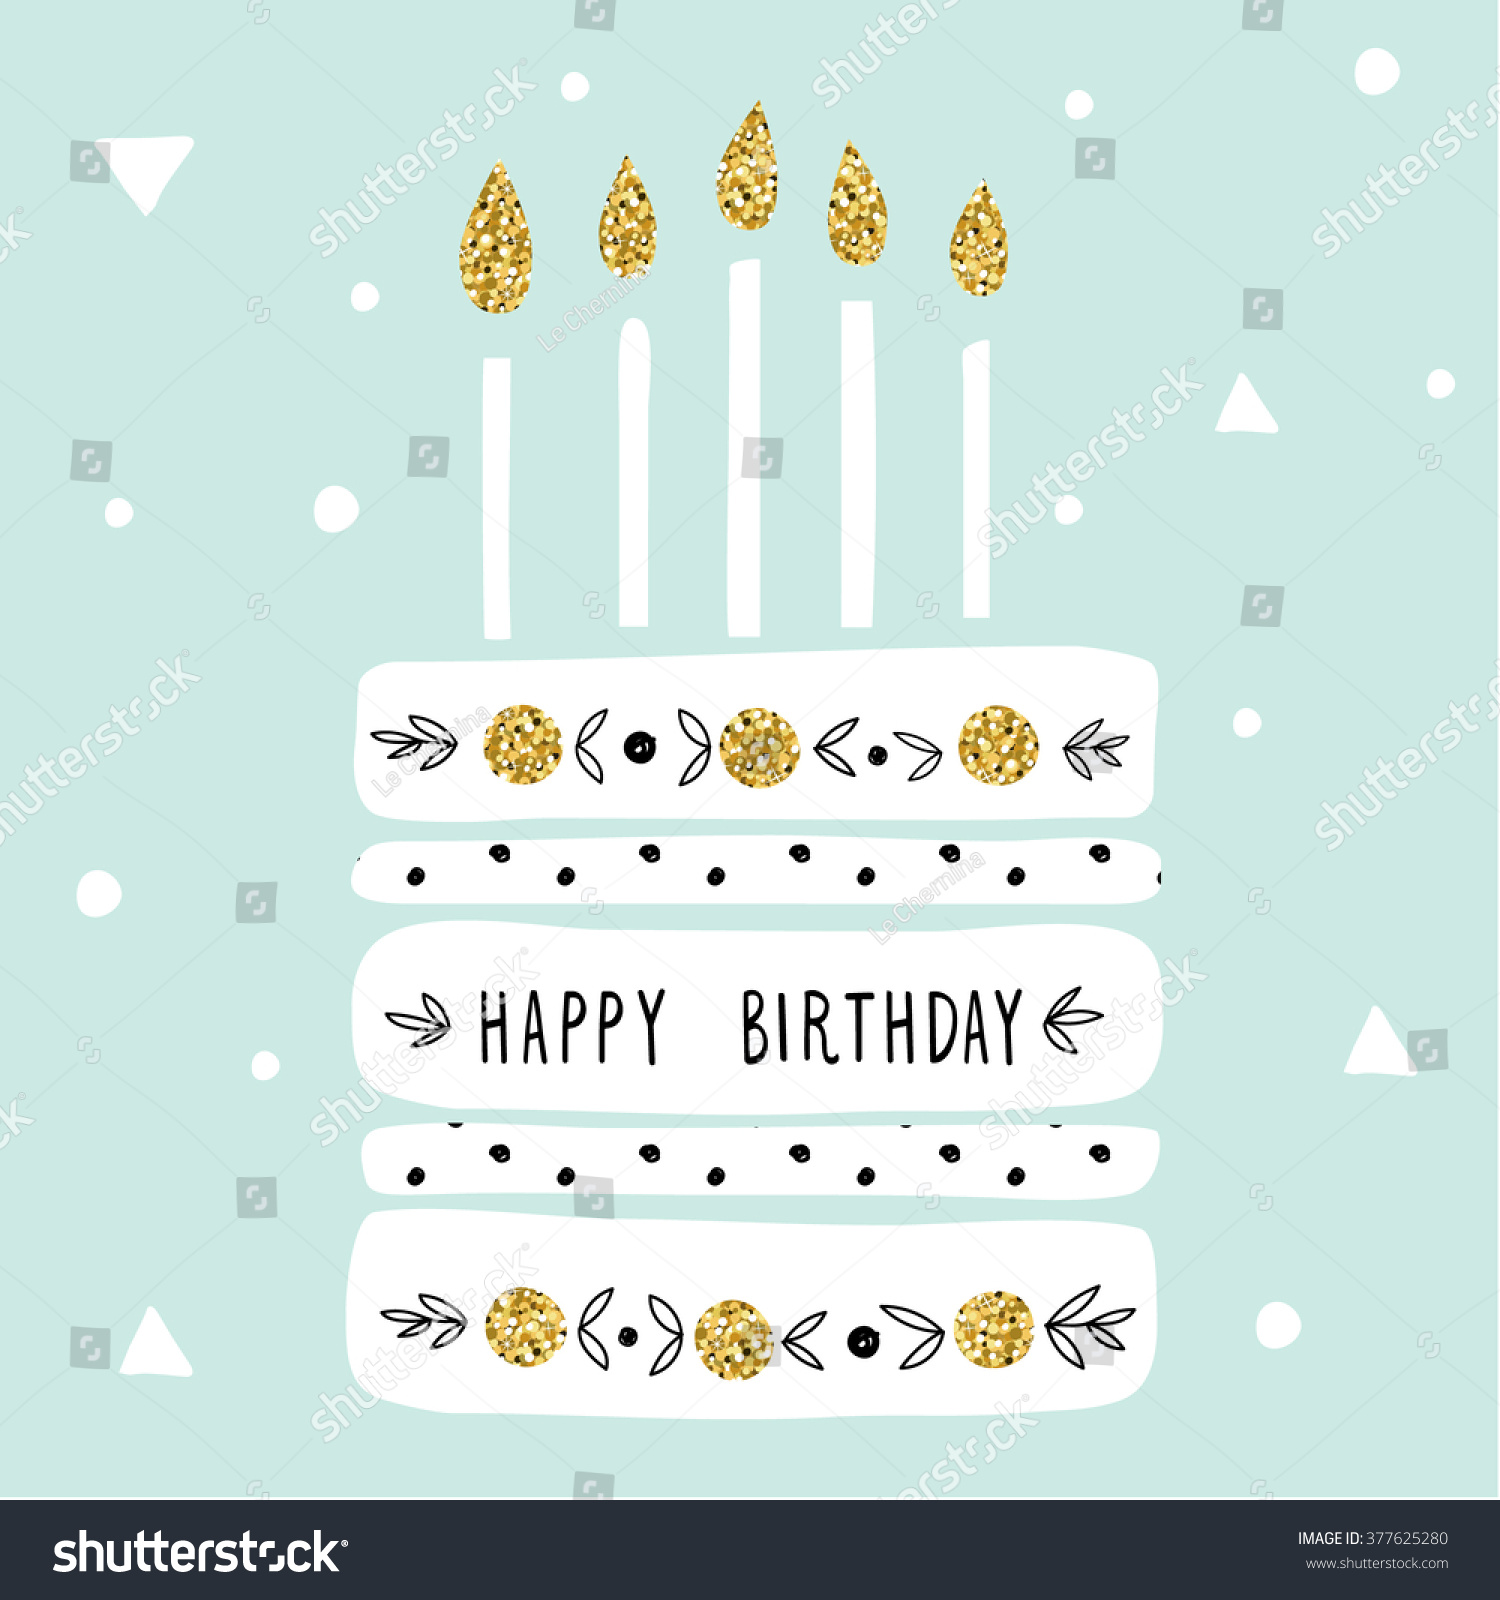 Cute Happy Birthday Card Cake Candles Vector 377625280 – Cool Happy Birthday Card